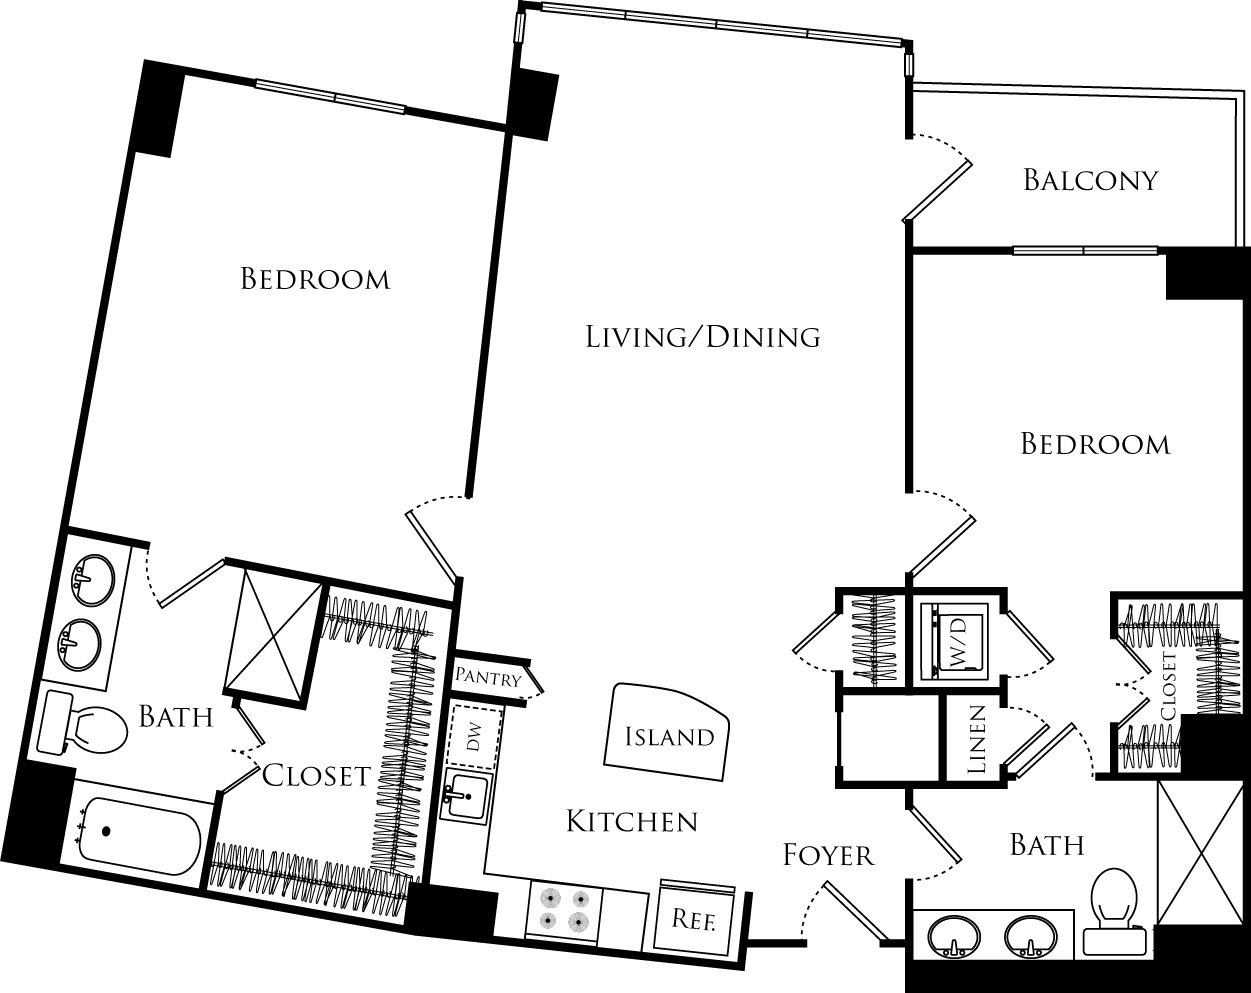 B2H floor plan with 2 beds, 2 baths and is 1158 square feet